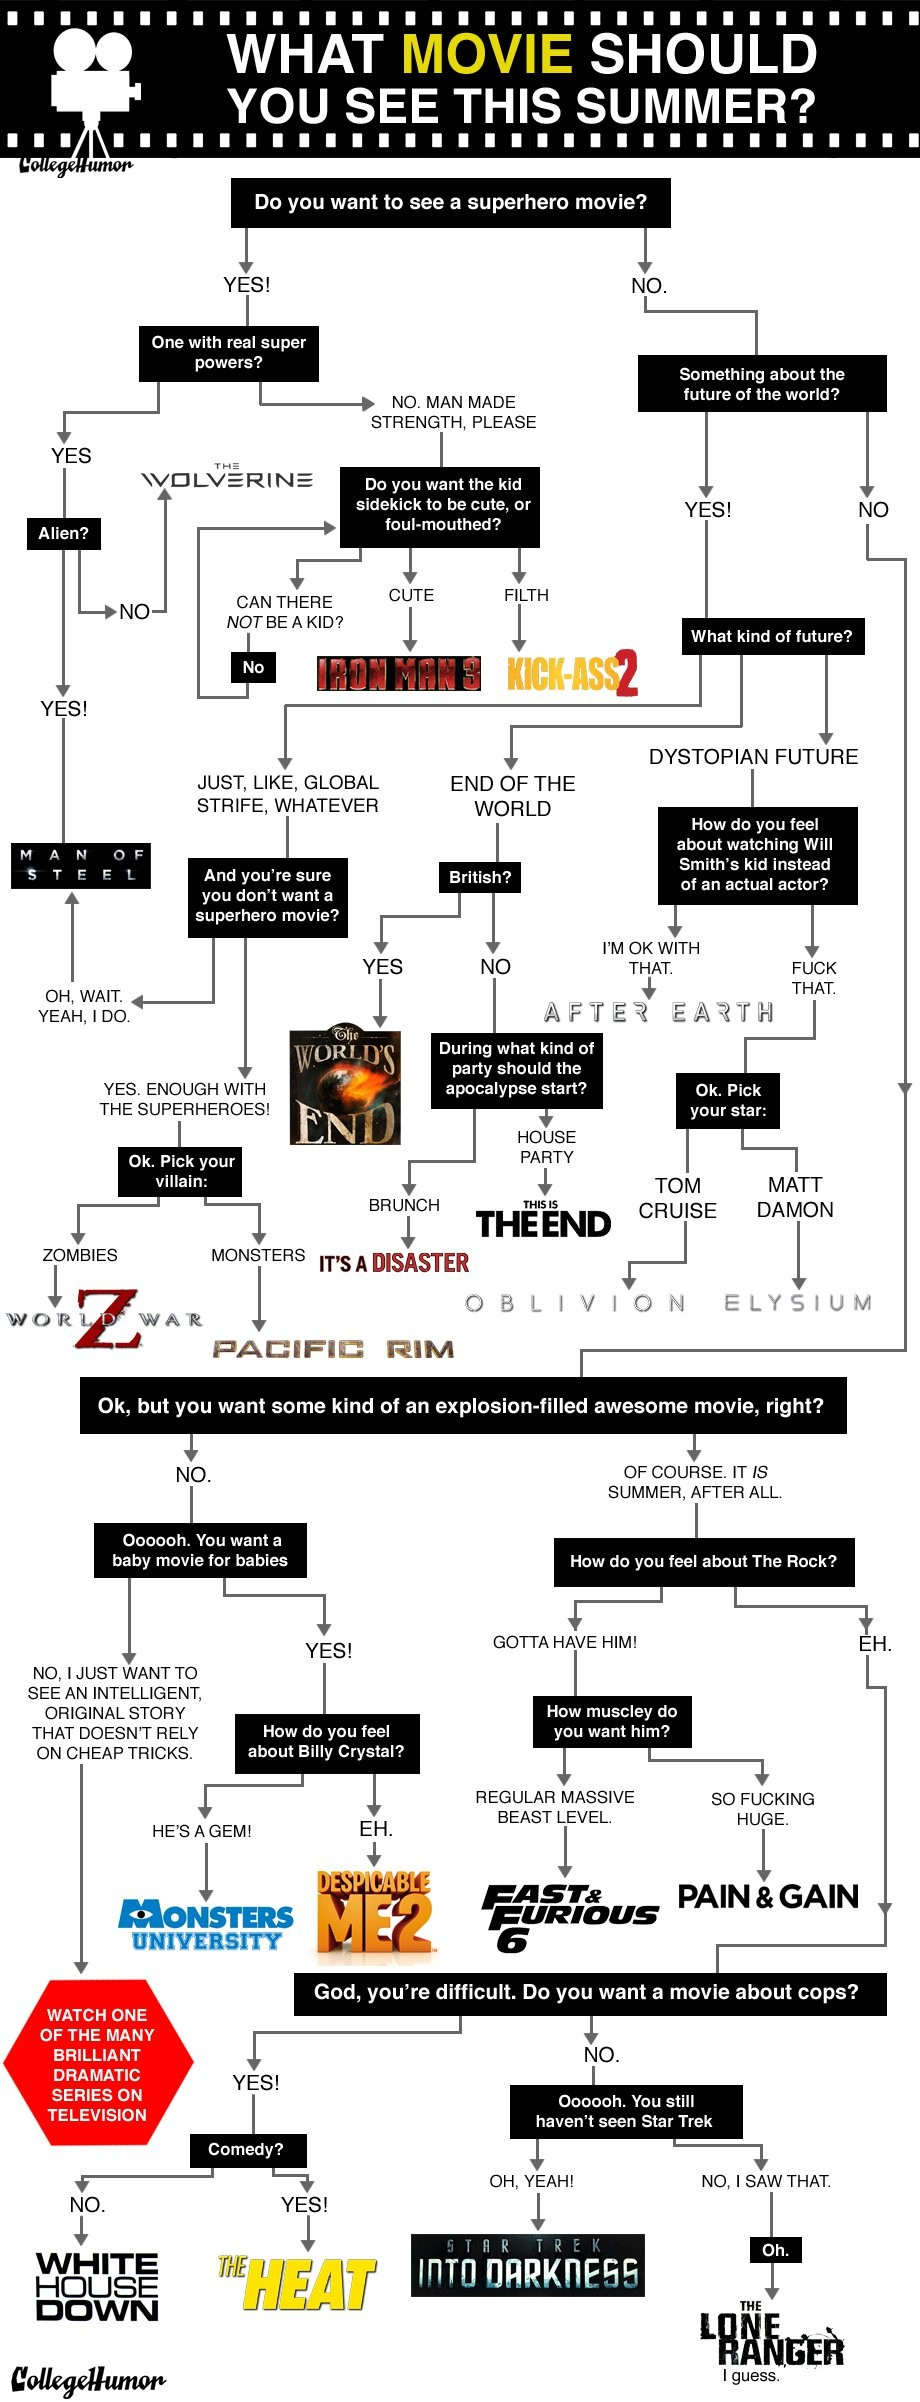 5a31ce99f2885e746adb2839d9ac17d3-flowchart-what-movie-should-you-see-this-weekend_0.jpg